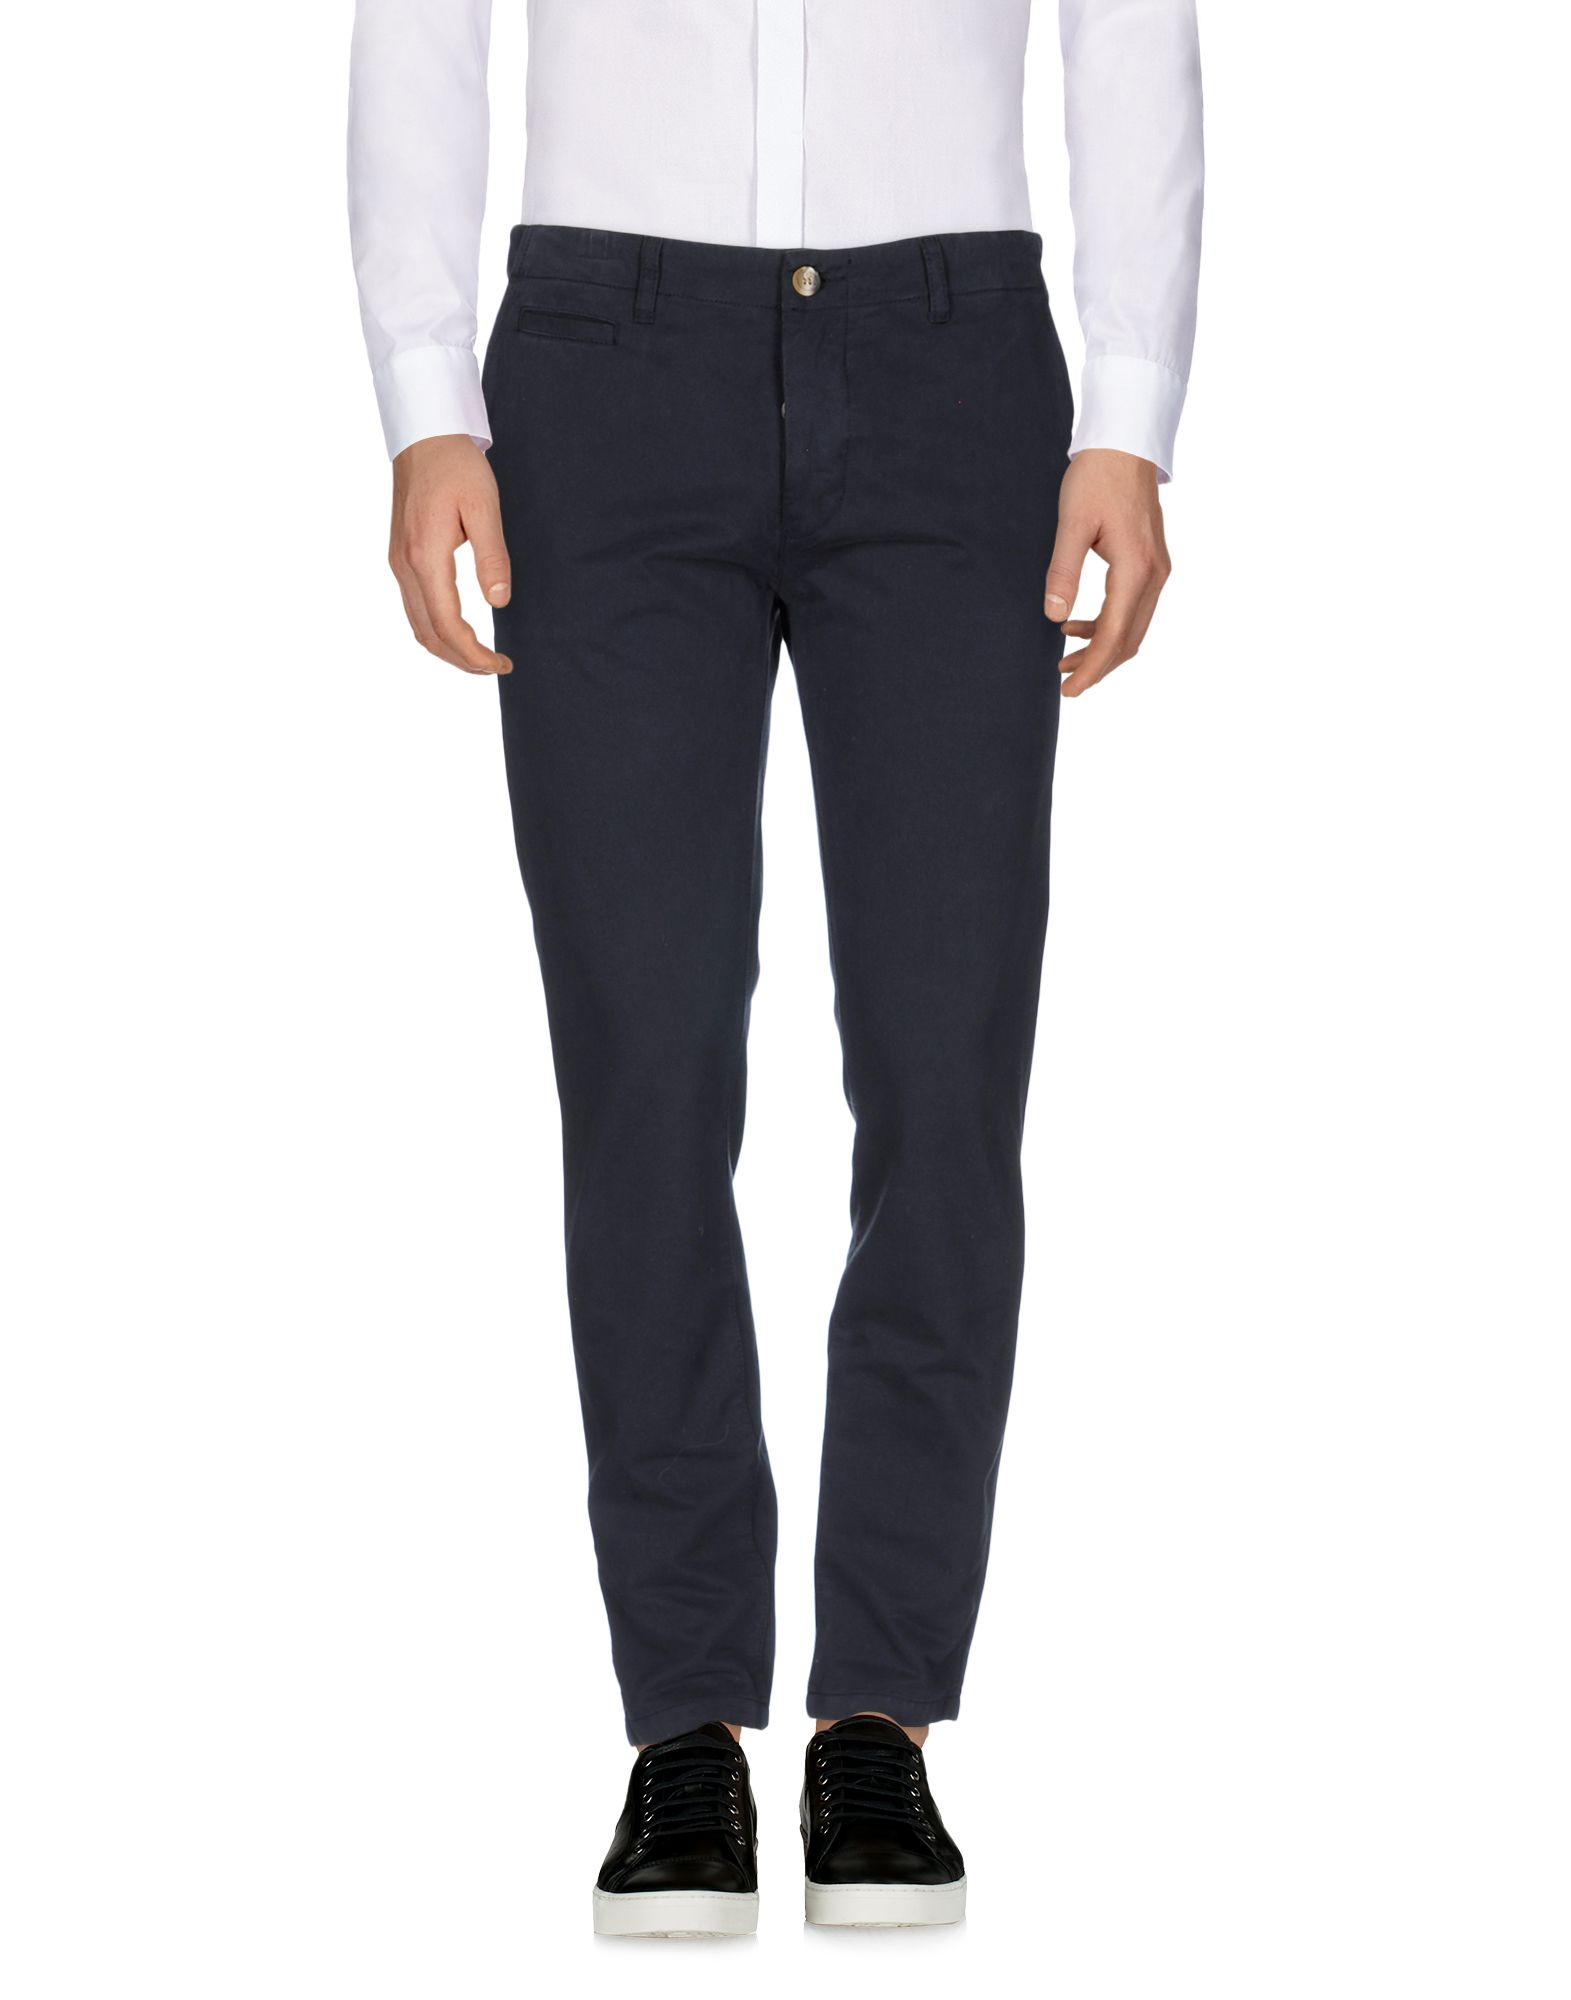 CUISSE DE GRENOUILLE Casual Pants in Dark Blue